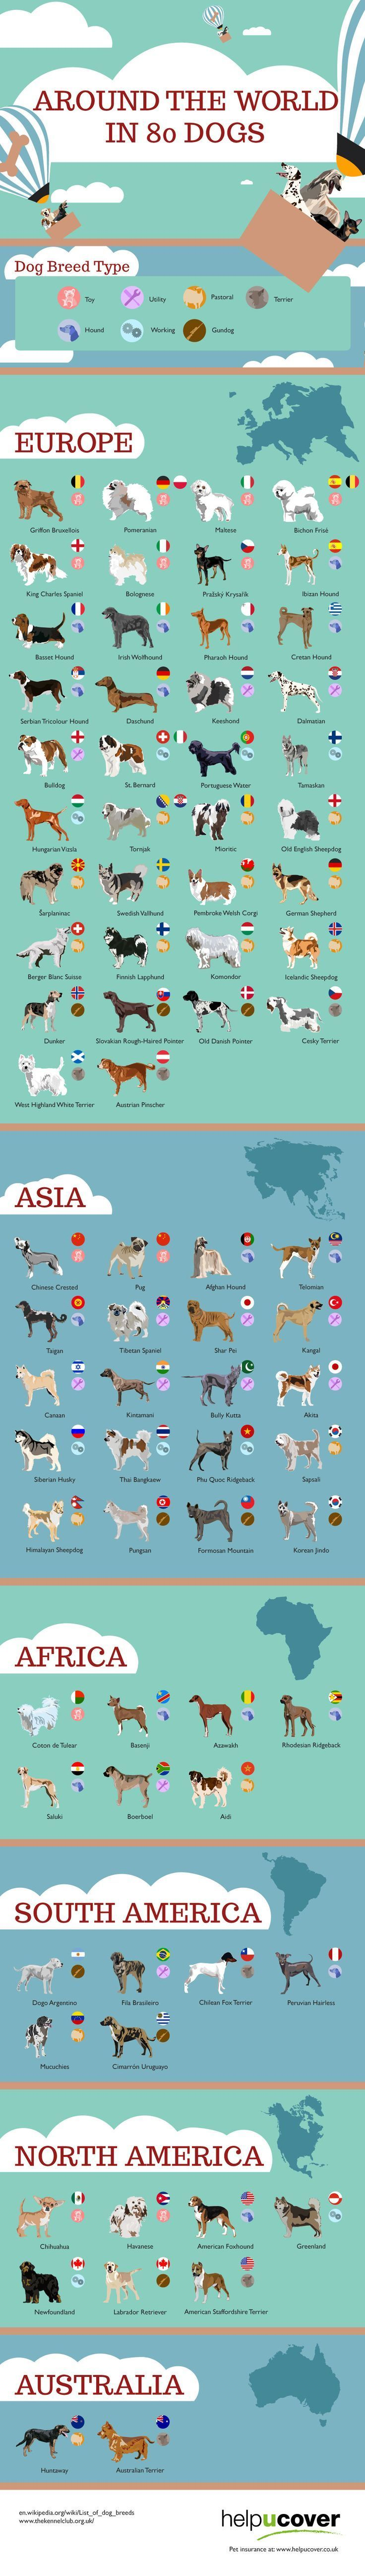 Around the World in 80 Dogs   #Dogs #Pets #infographic #doginfographic